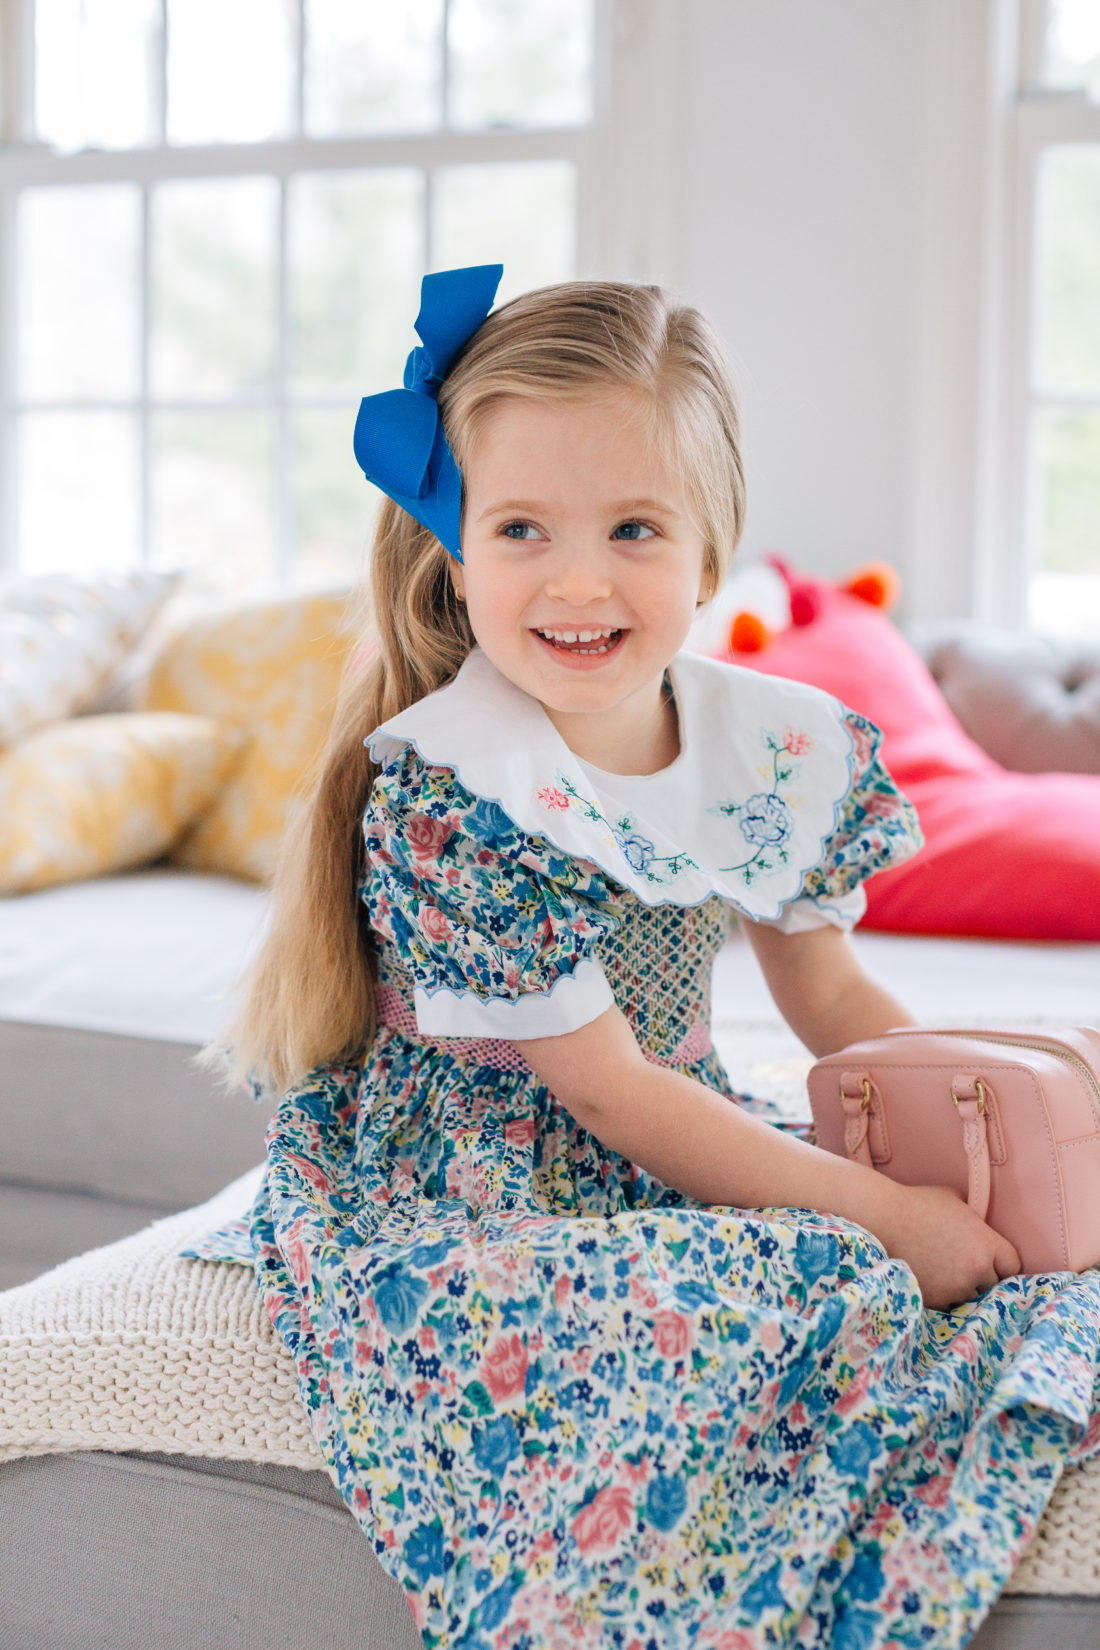 Marlowe Martino wears a vintage floral smocked dress for Easter with an embroidered collar that belonged to mother Eva Amurri Martino